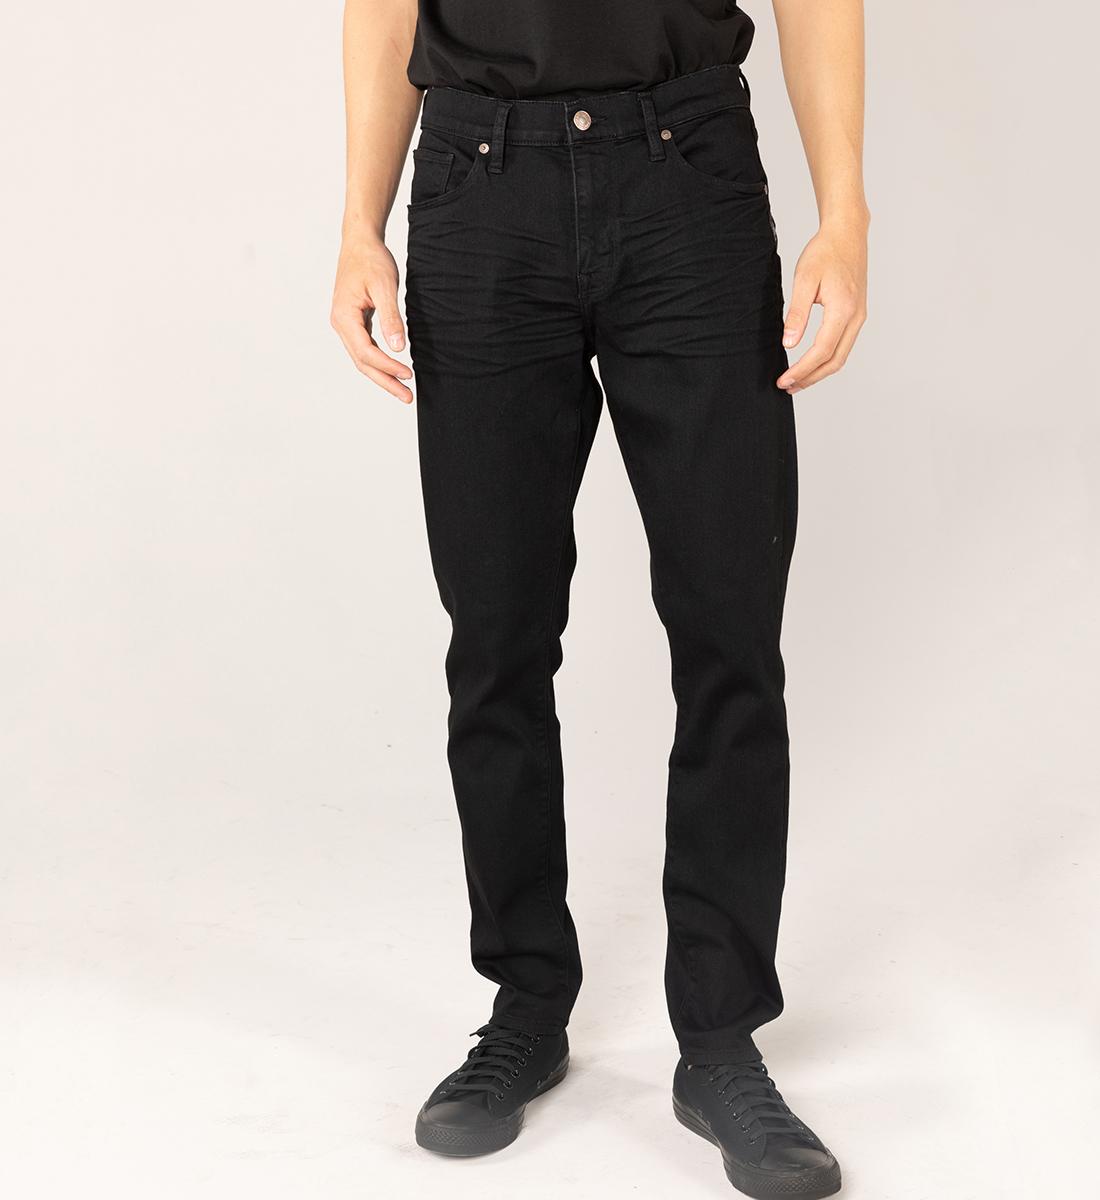 Silver Jeans Kenaston Eco-Friendly Slim Fit Slim Leg Jeans